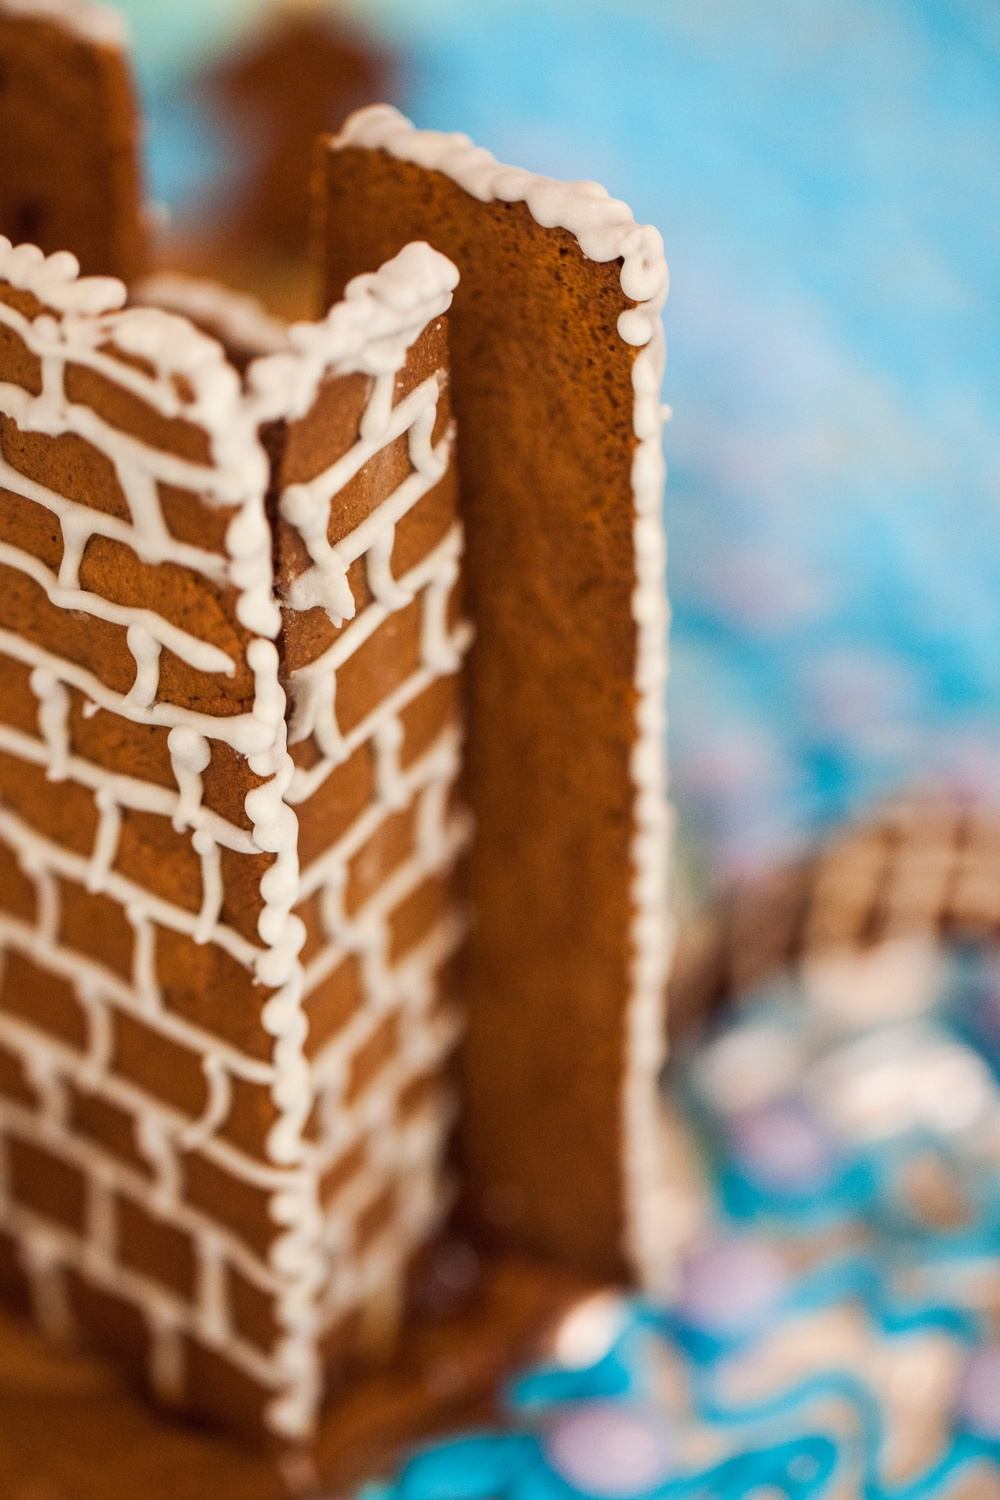 Details from the Gingerbread House Competition 2018. Cred: Viktoria Garvare.